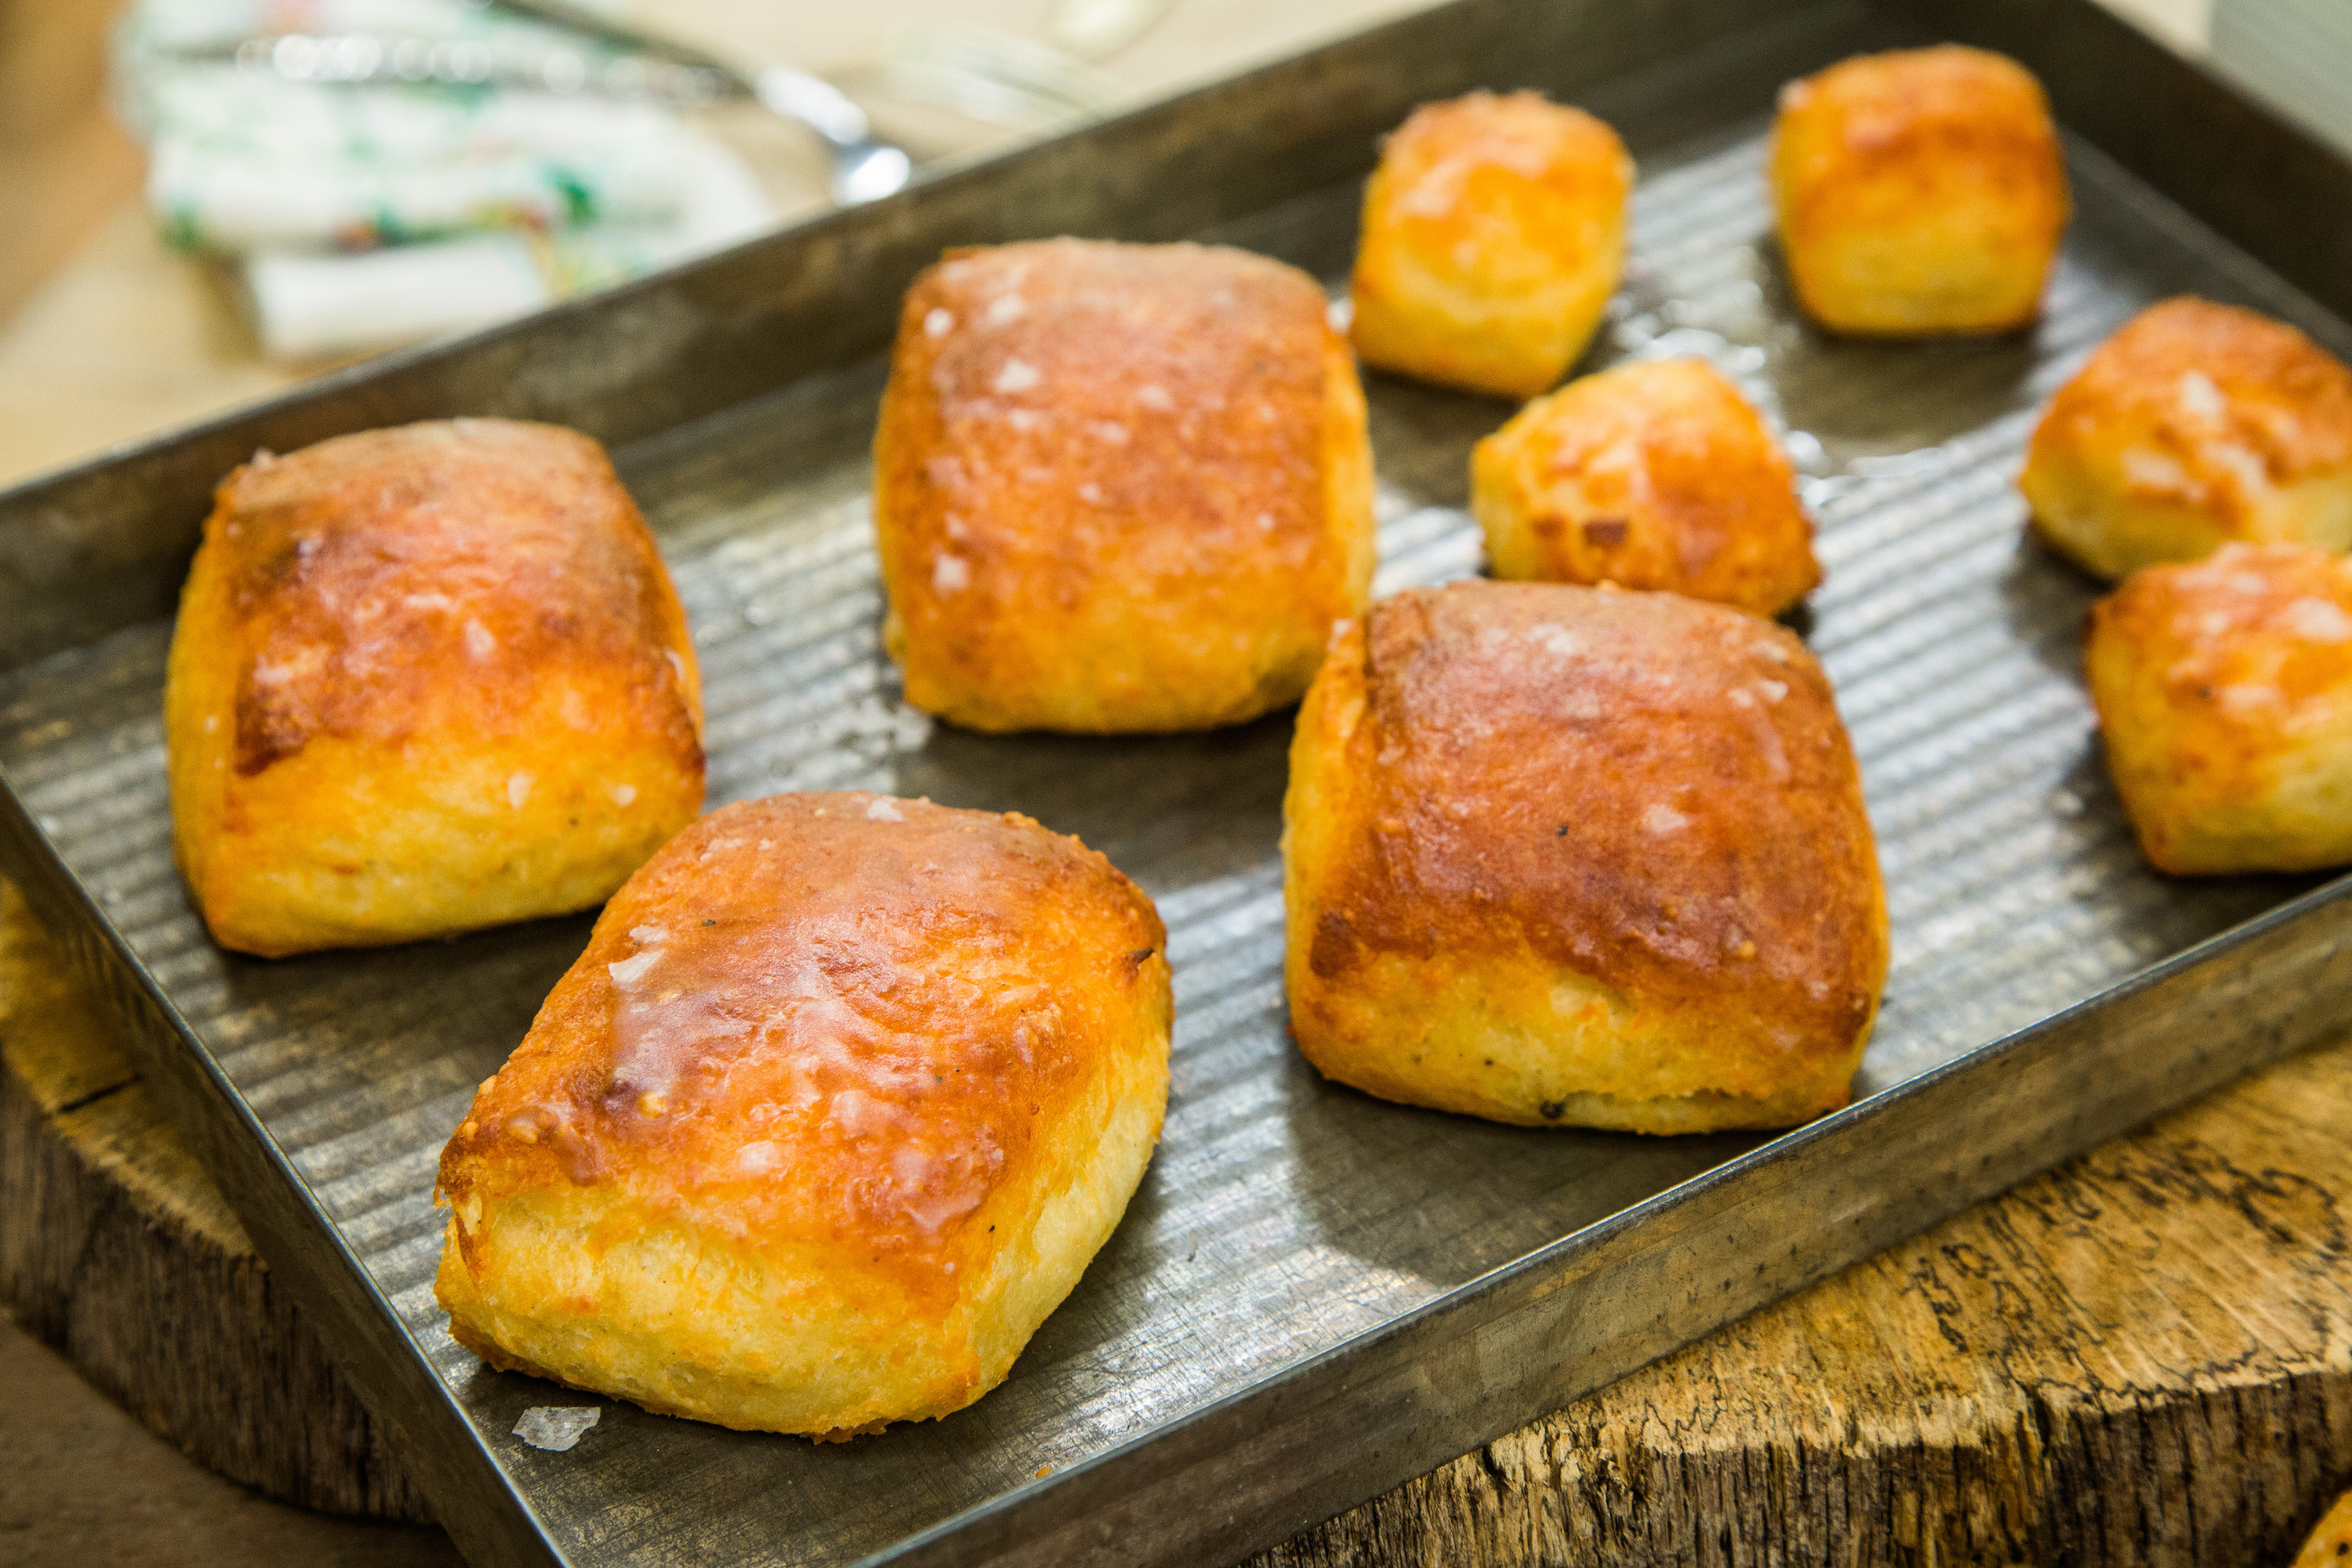 Recipes - Home & Family: Parmesan Black Pepper Biscuits ...